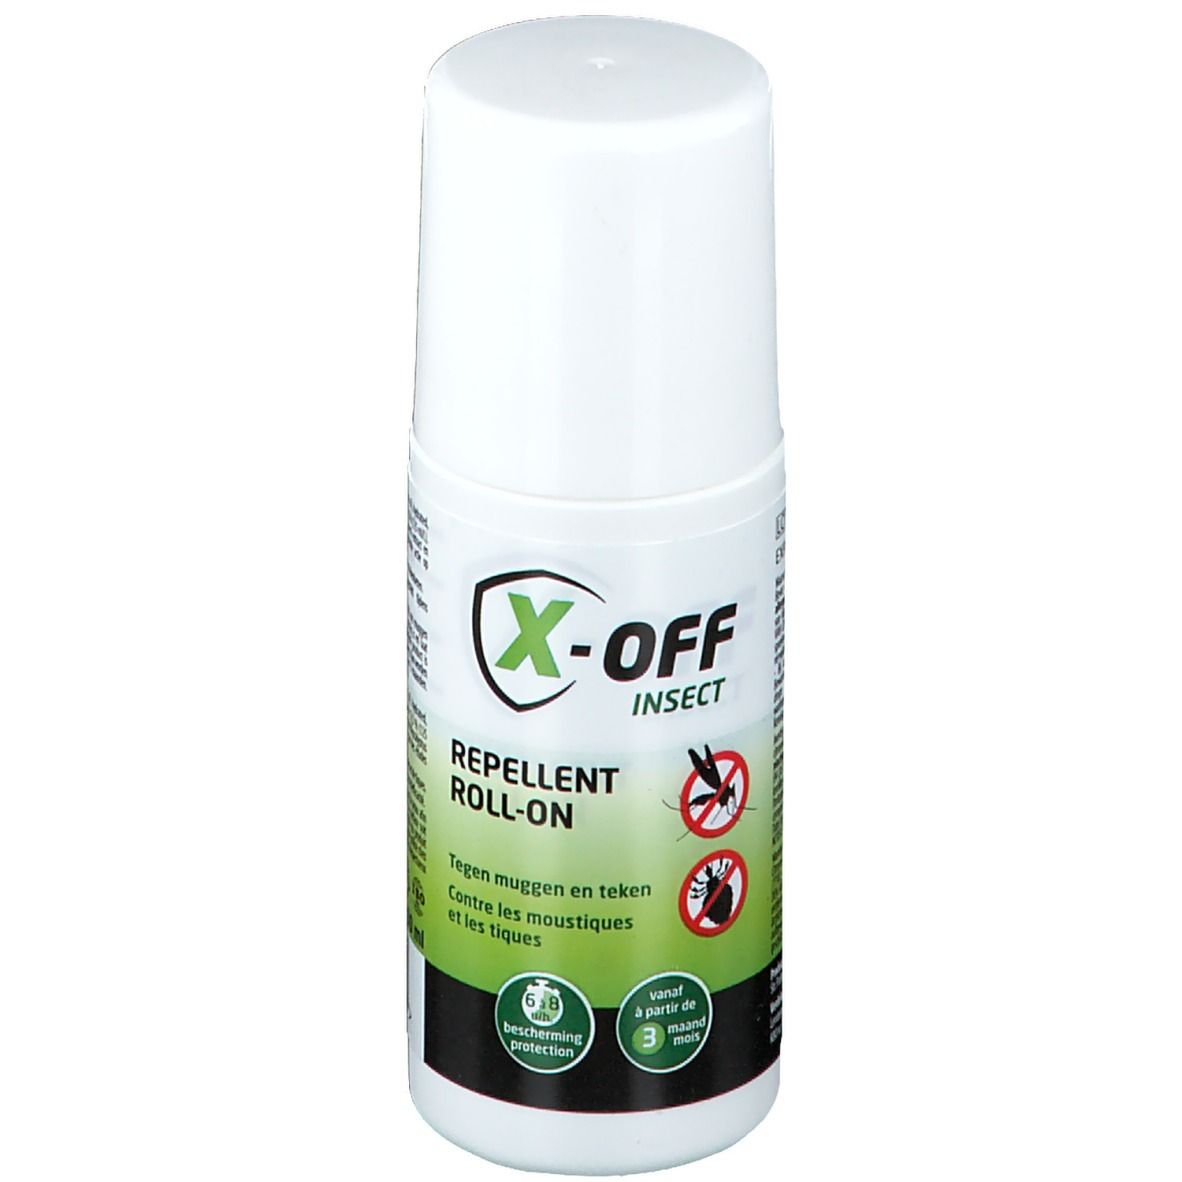 Afbeelding van X-off Insect Repellent Roll-On